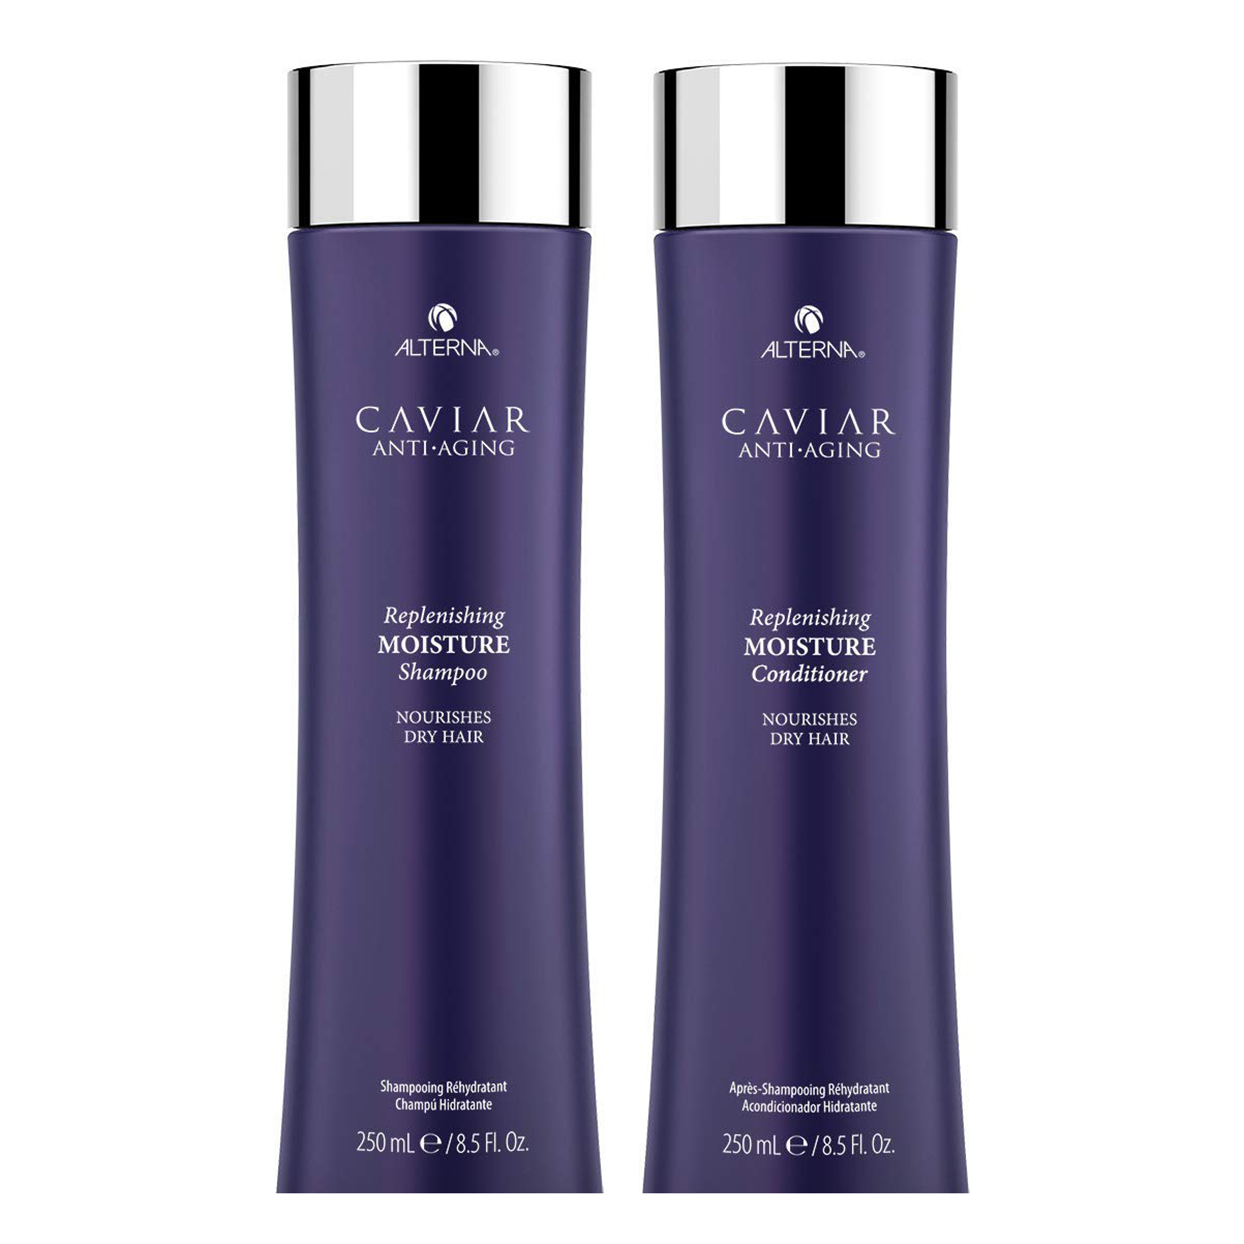 Alterna Caviar Anti-Aging Replenishing Moisture Shampoo and Conditioner Kit